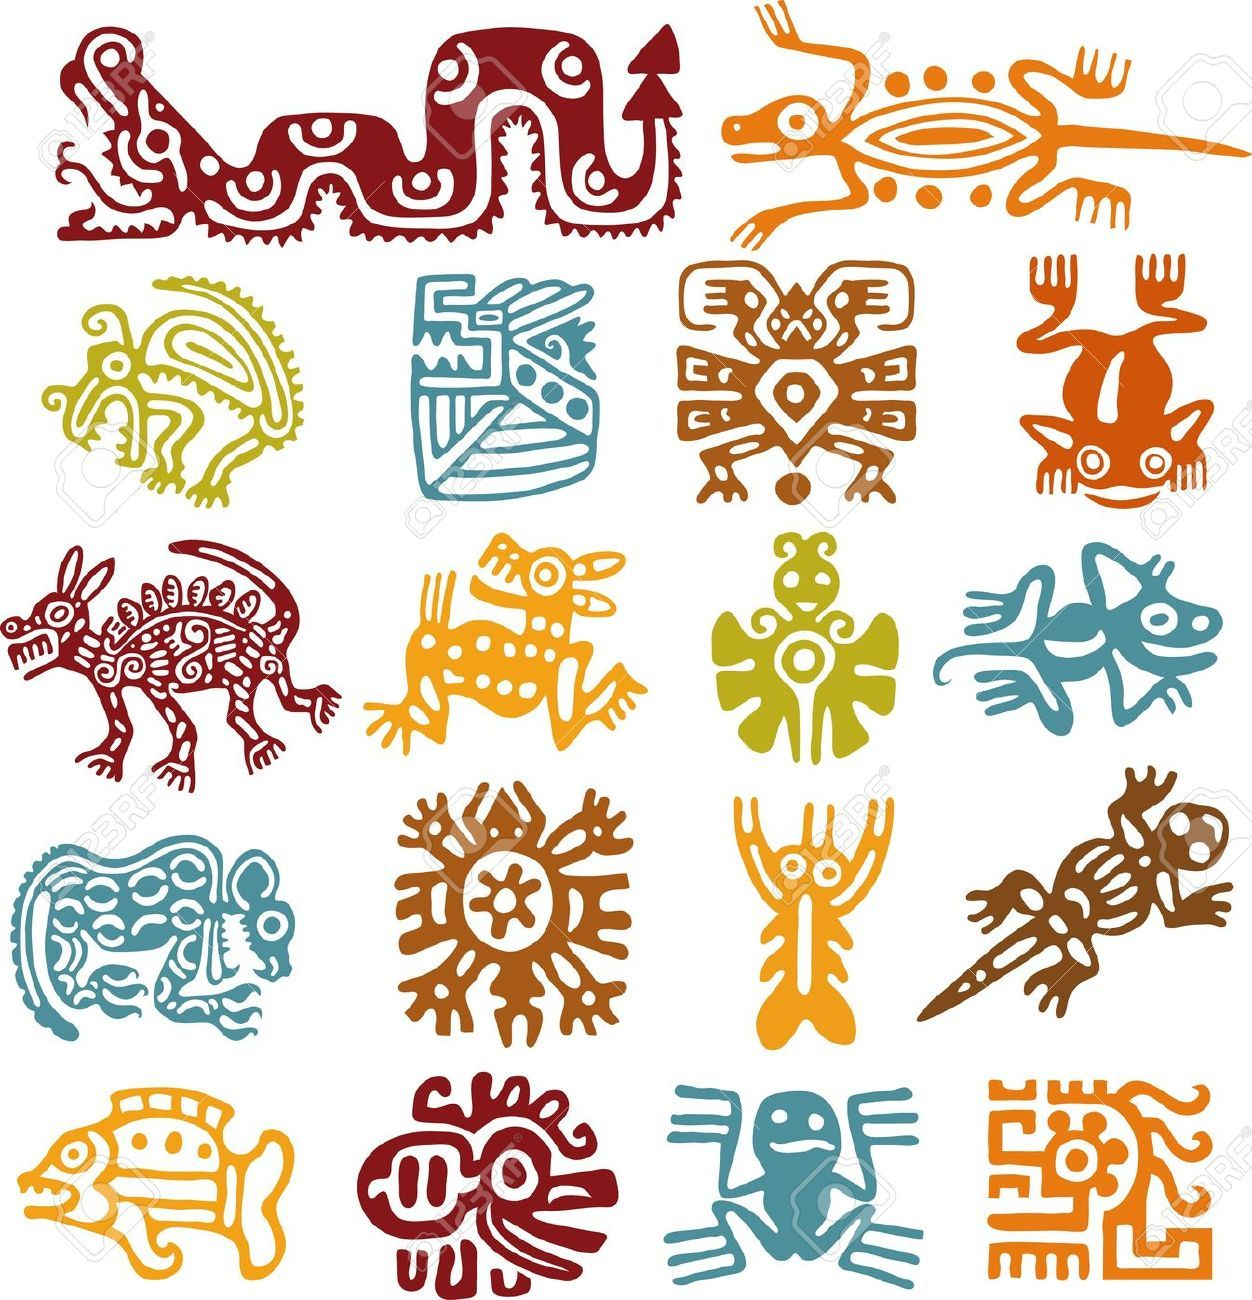 Mayan Animals Symbolism Symbols Aztec Art And On